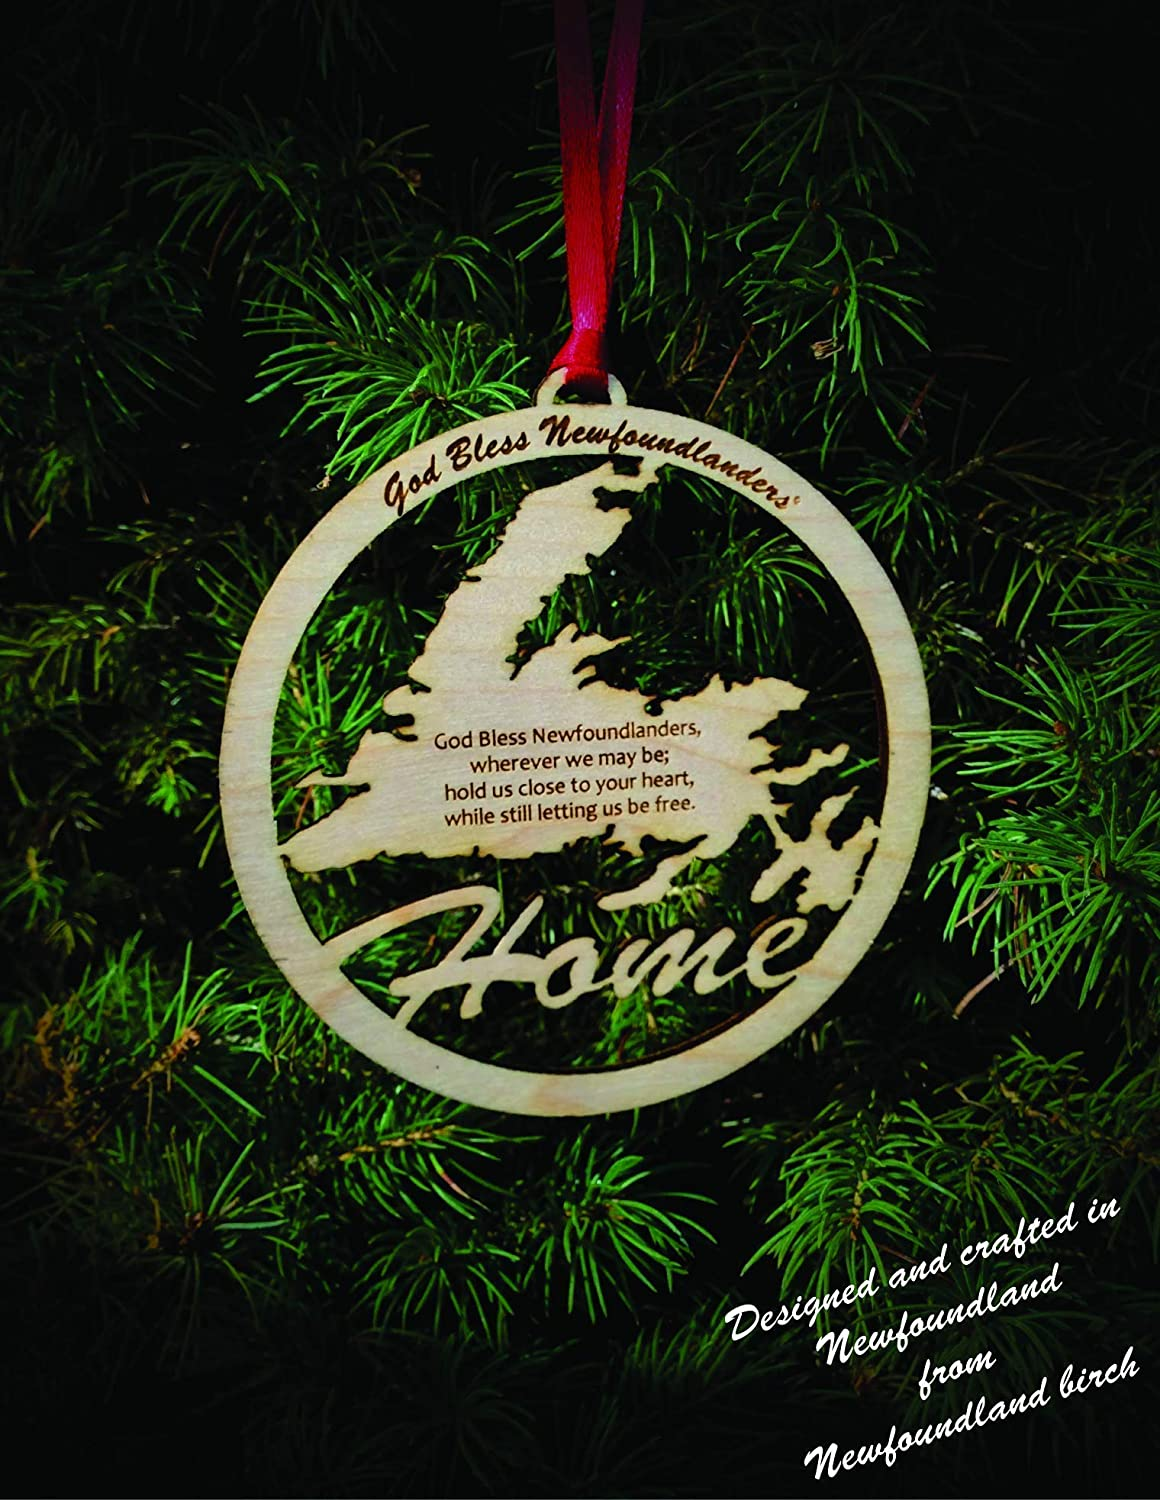 'God Bless Newfoundlanders' Wood Laser-cut Ornament